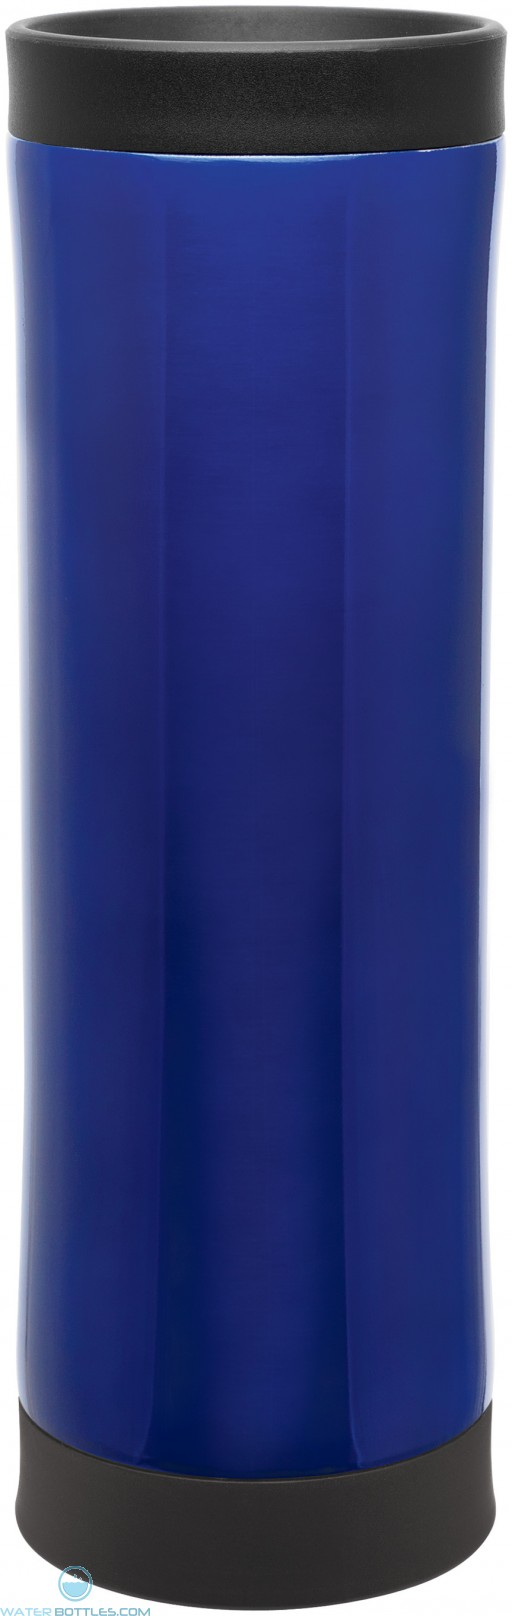 Americano Double Wall Thermal Tumblers | 16 oz - Blue